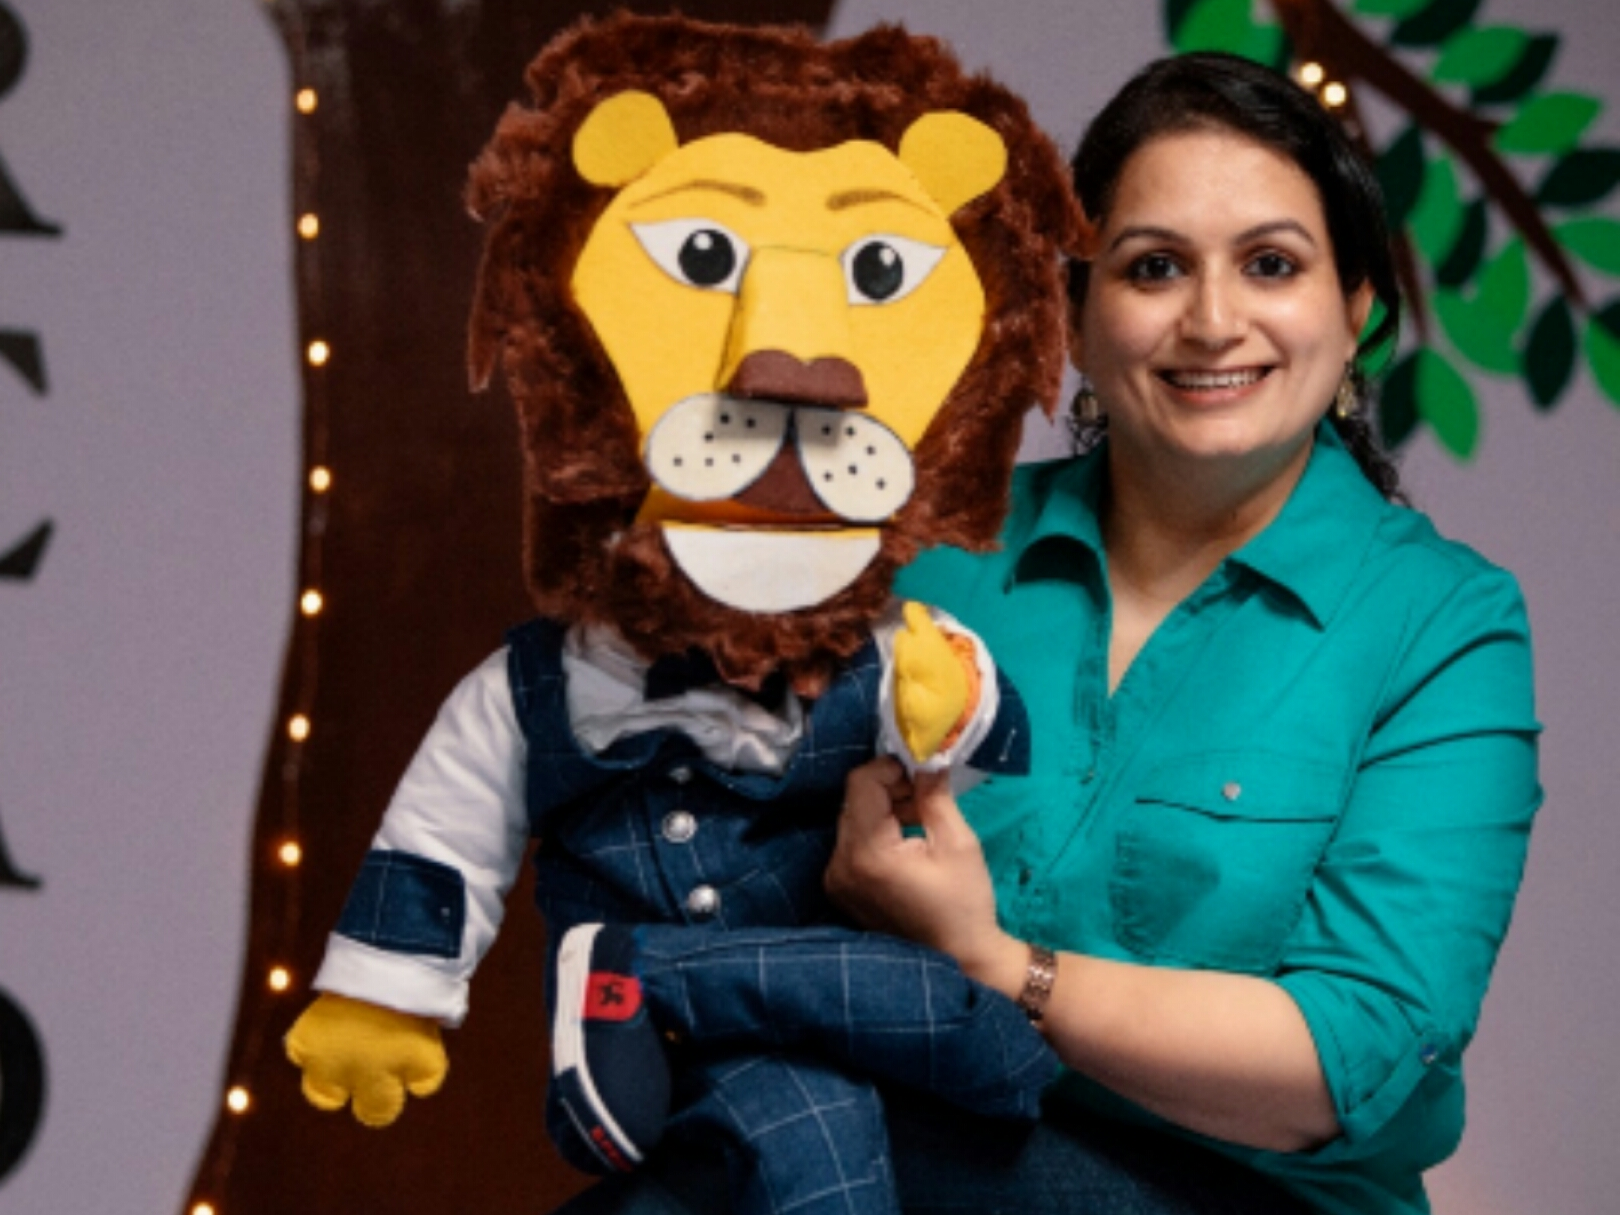 Puppeteer Sanika Singh Suggests Stories To Deal With Trauma In Children